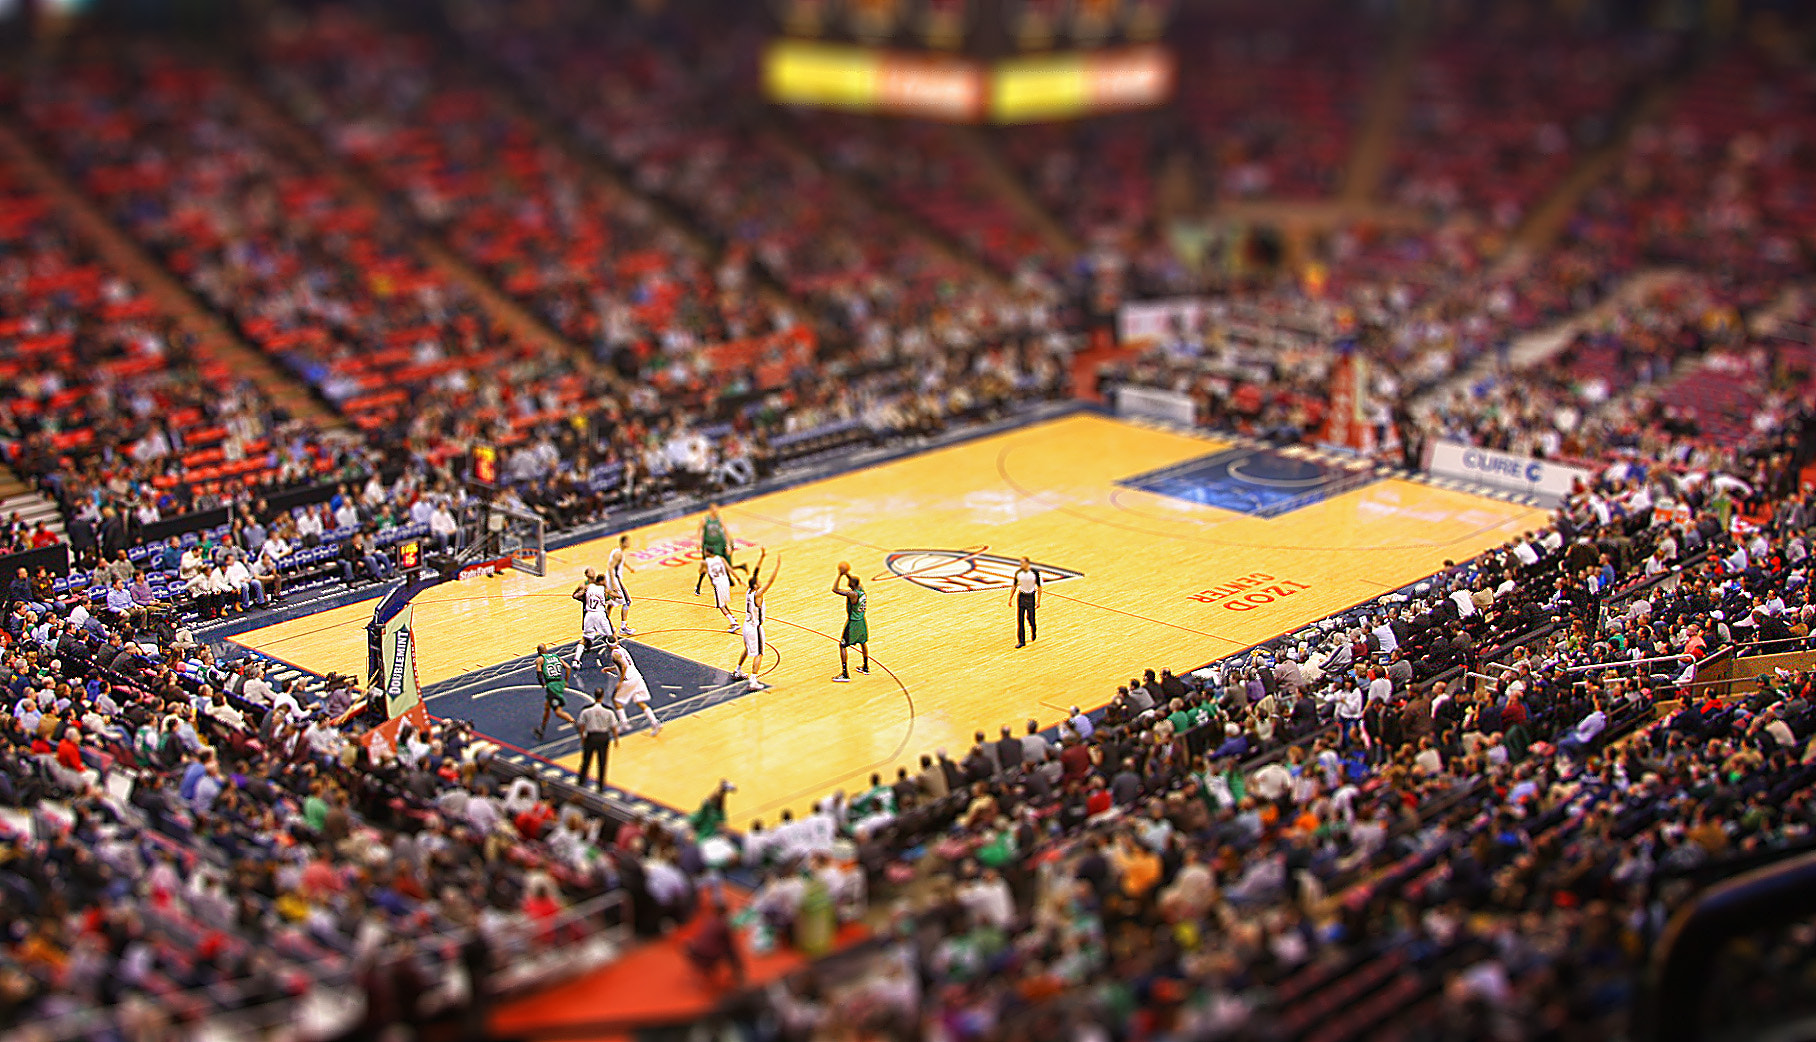 Photograph NBA by Alex G on 500px